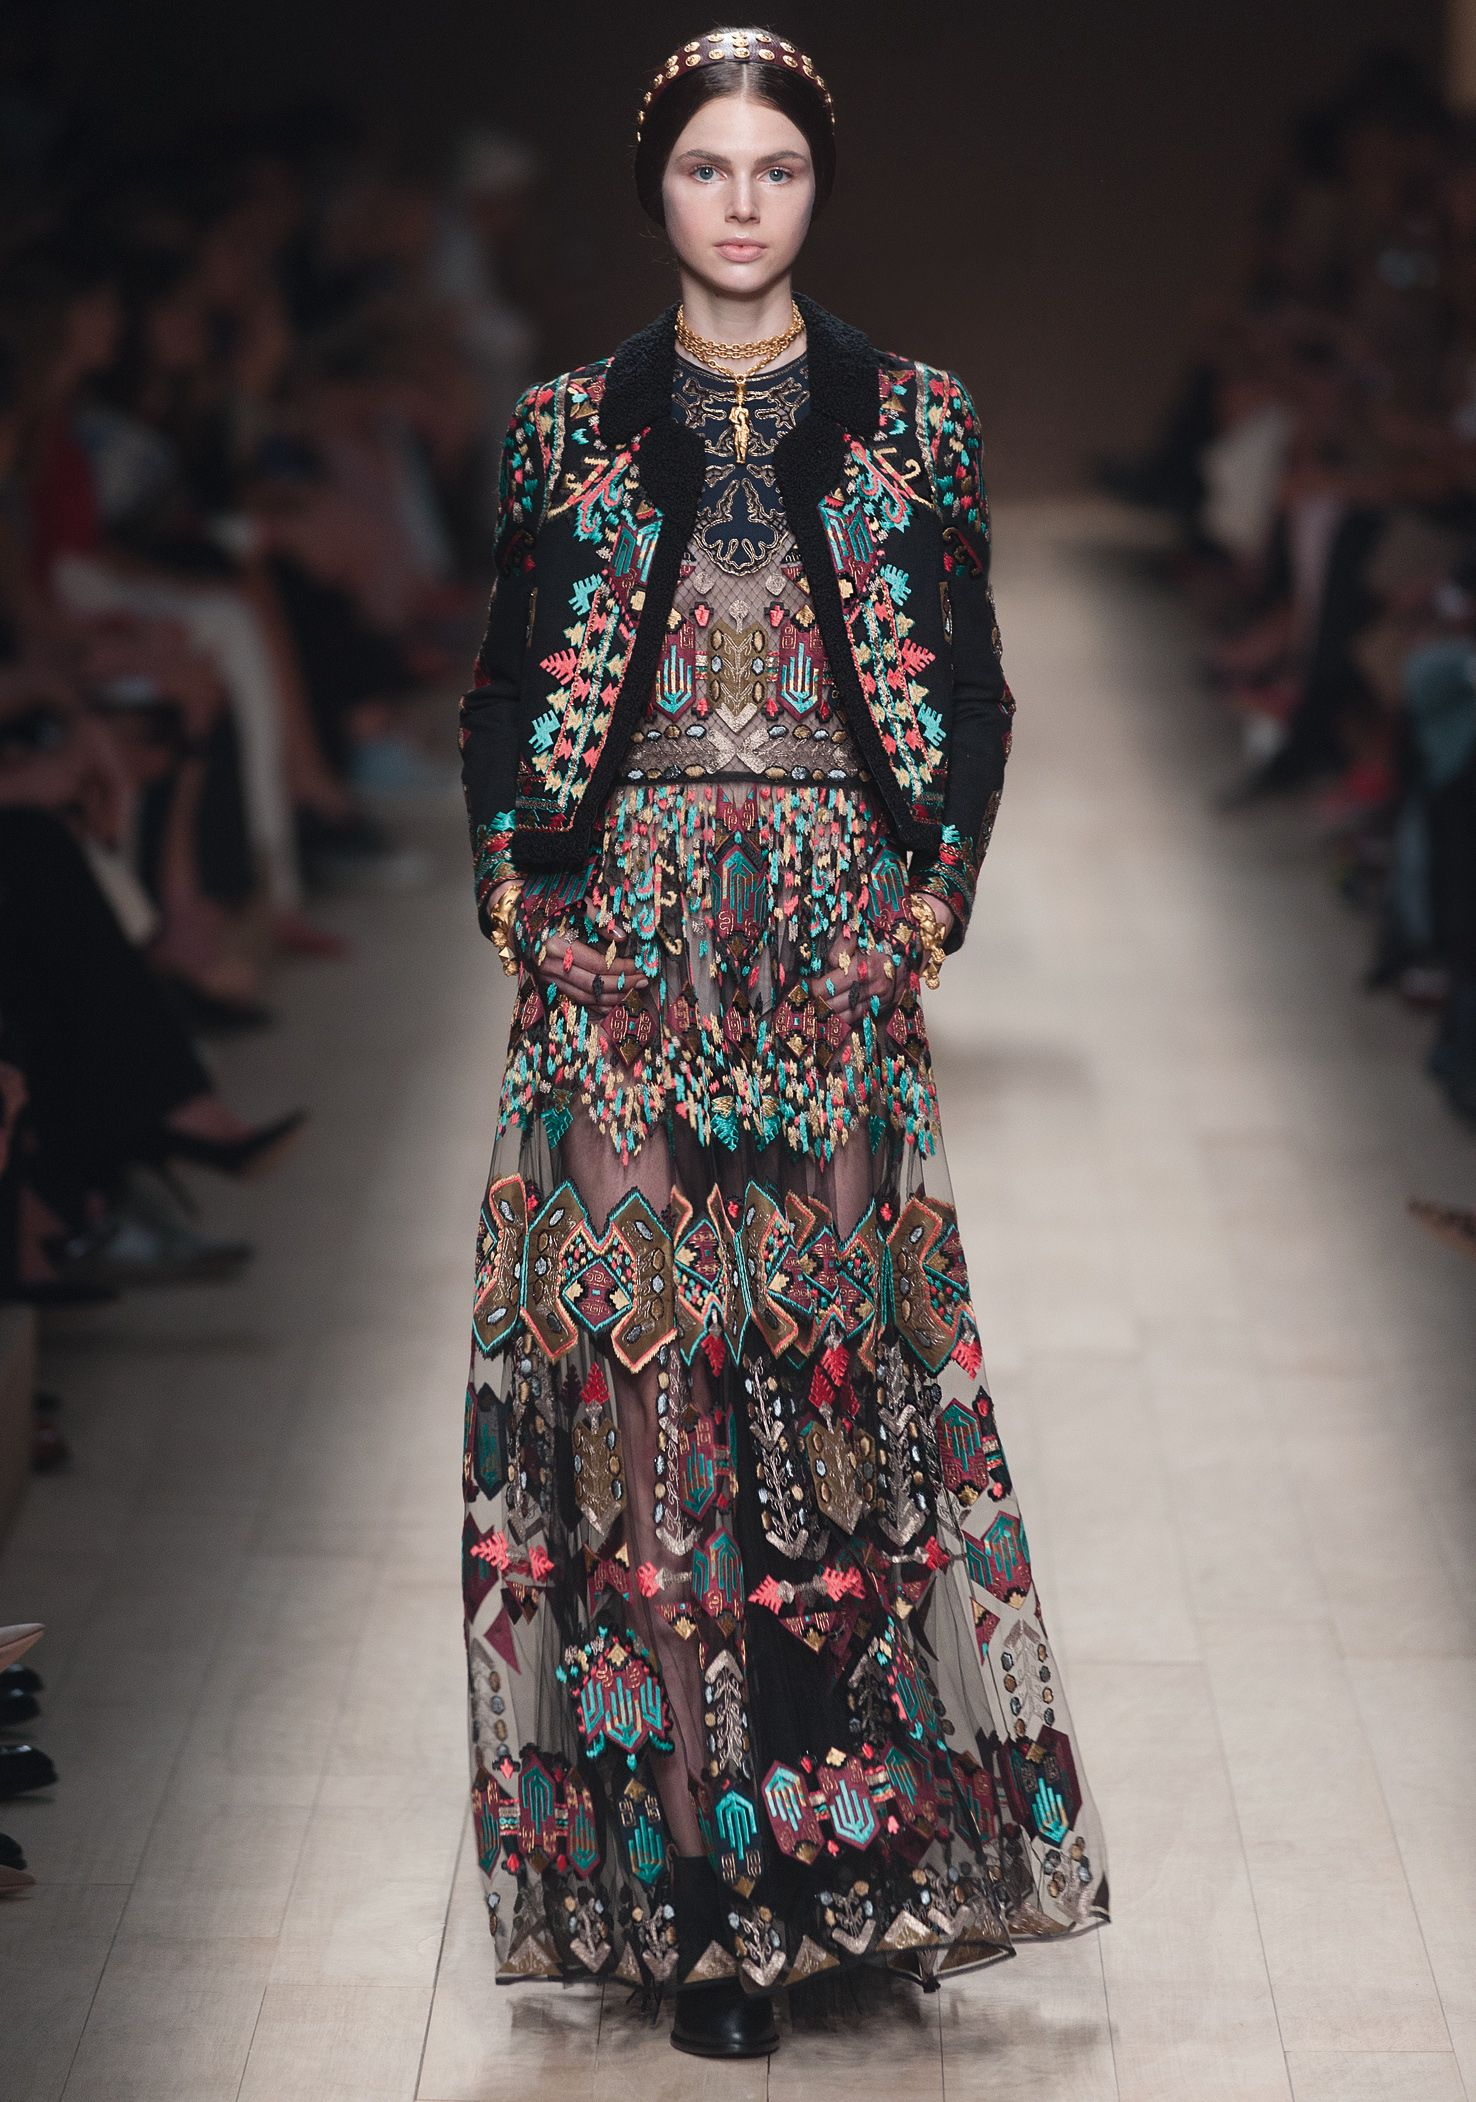 Spring 2014 fashionable prints images